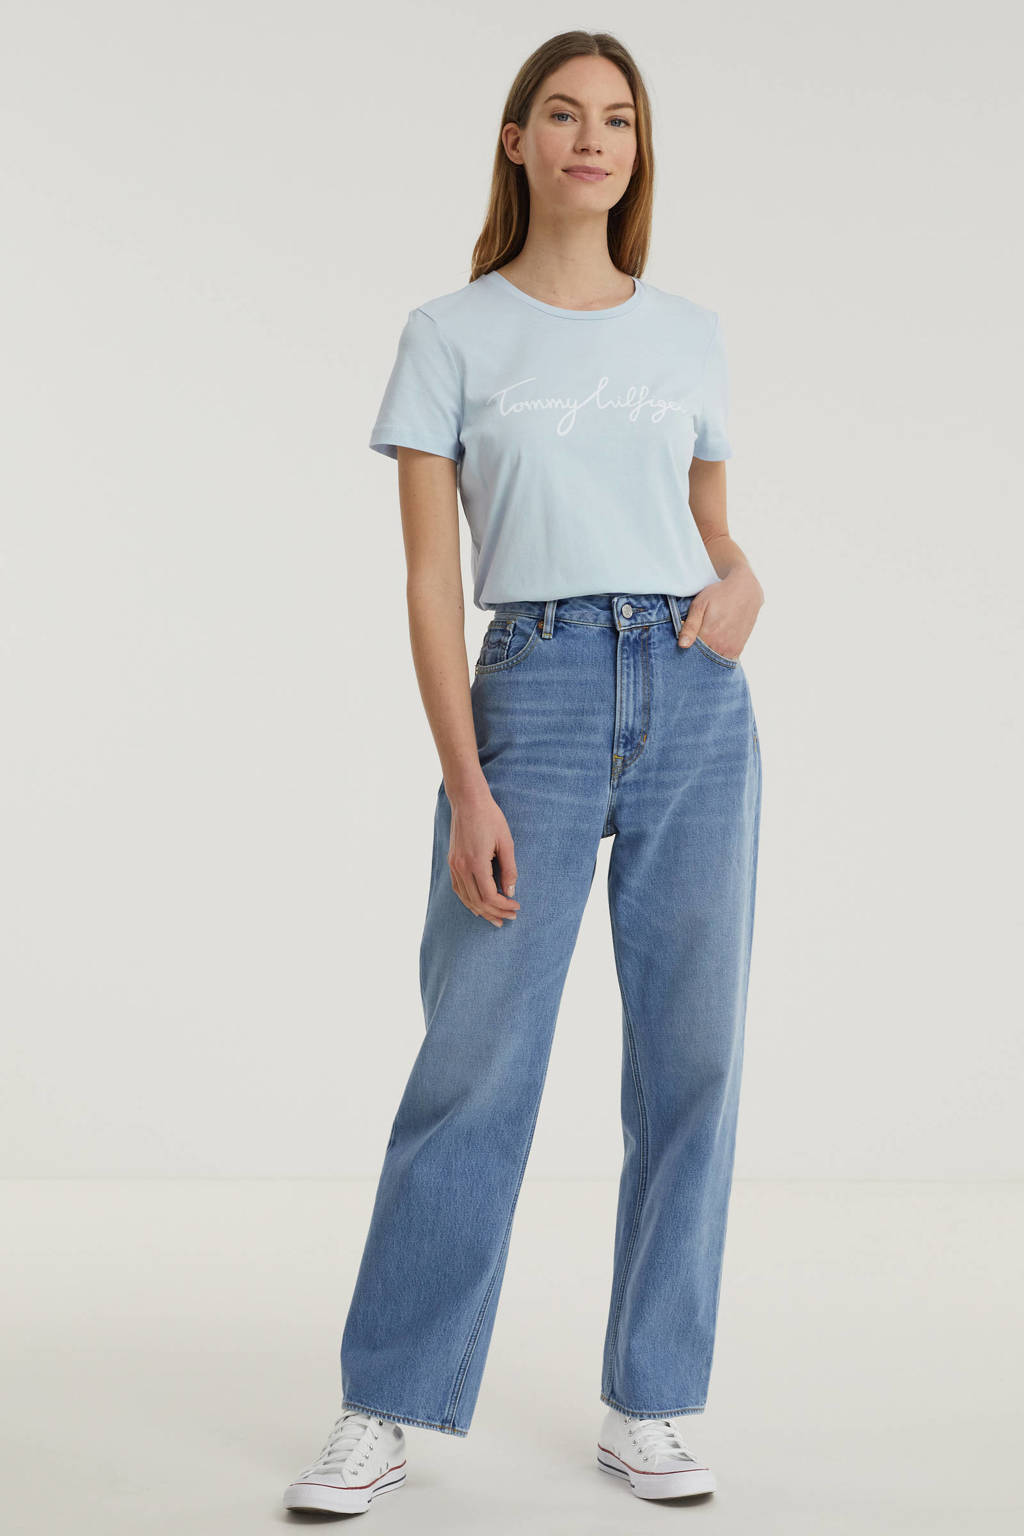 Kings of Indigo high waist straight fit jeans ALICE van biologisch katoen 5037 vintage light blue, 5037 VINTAGE LIGHT BLUE